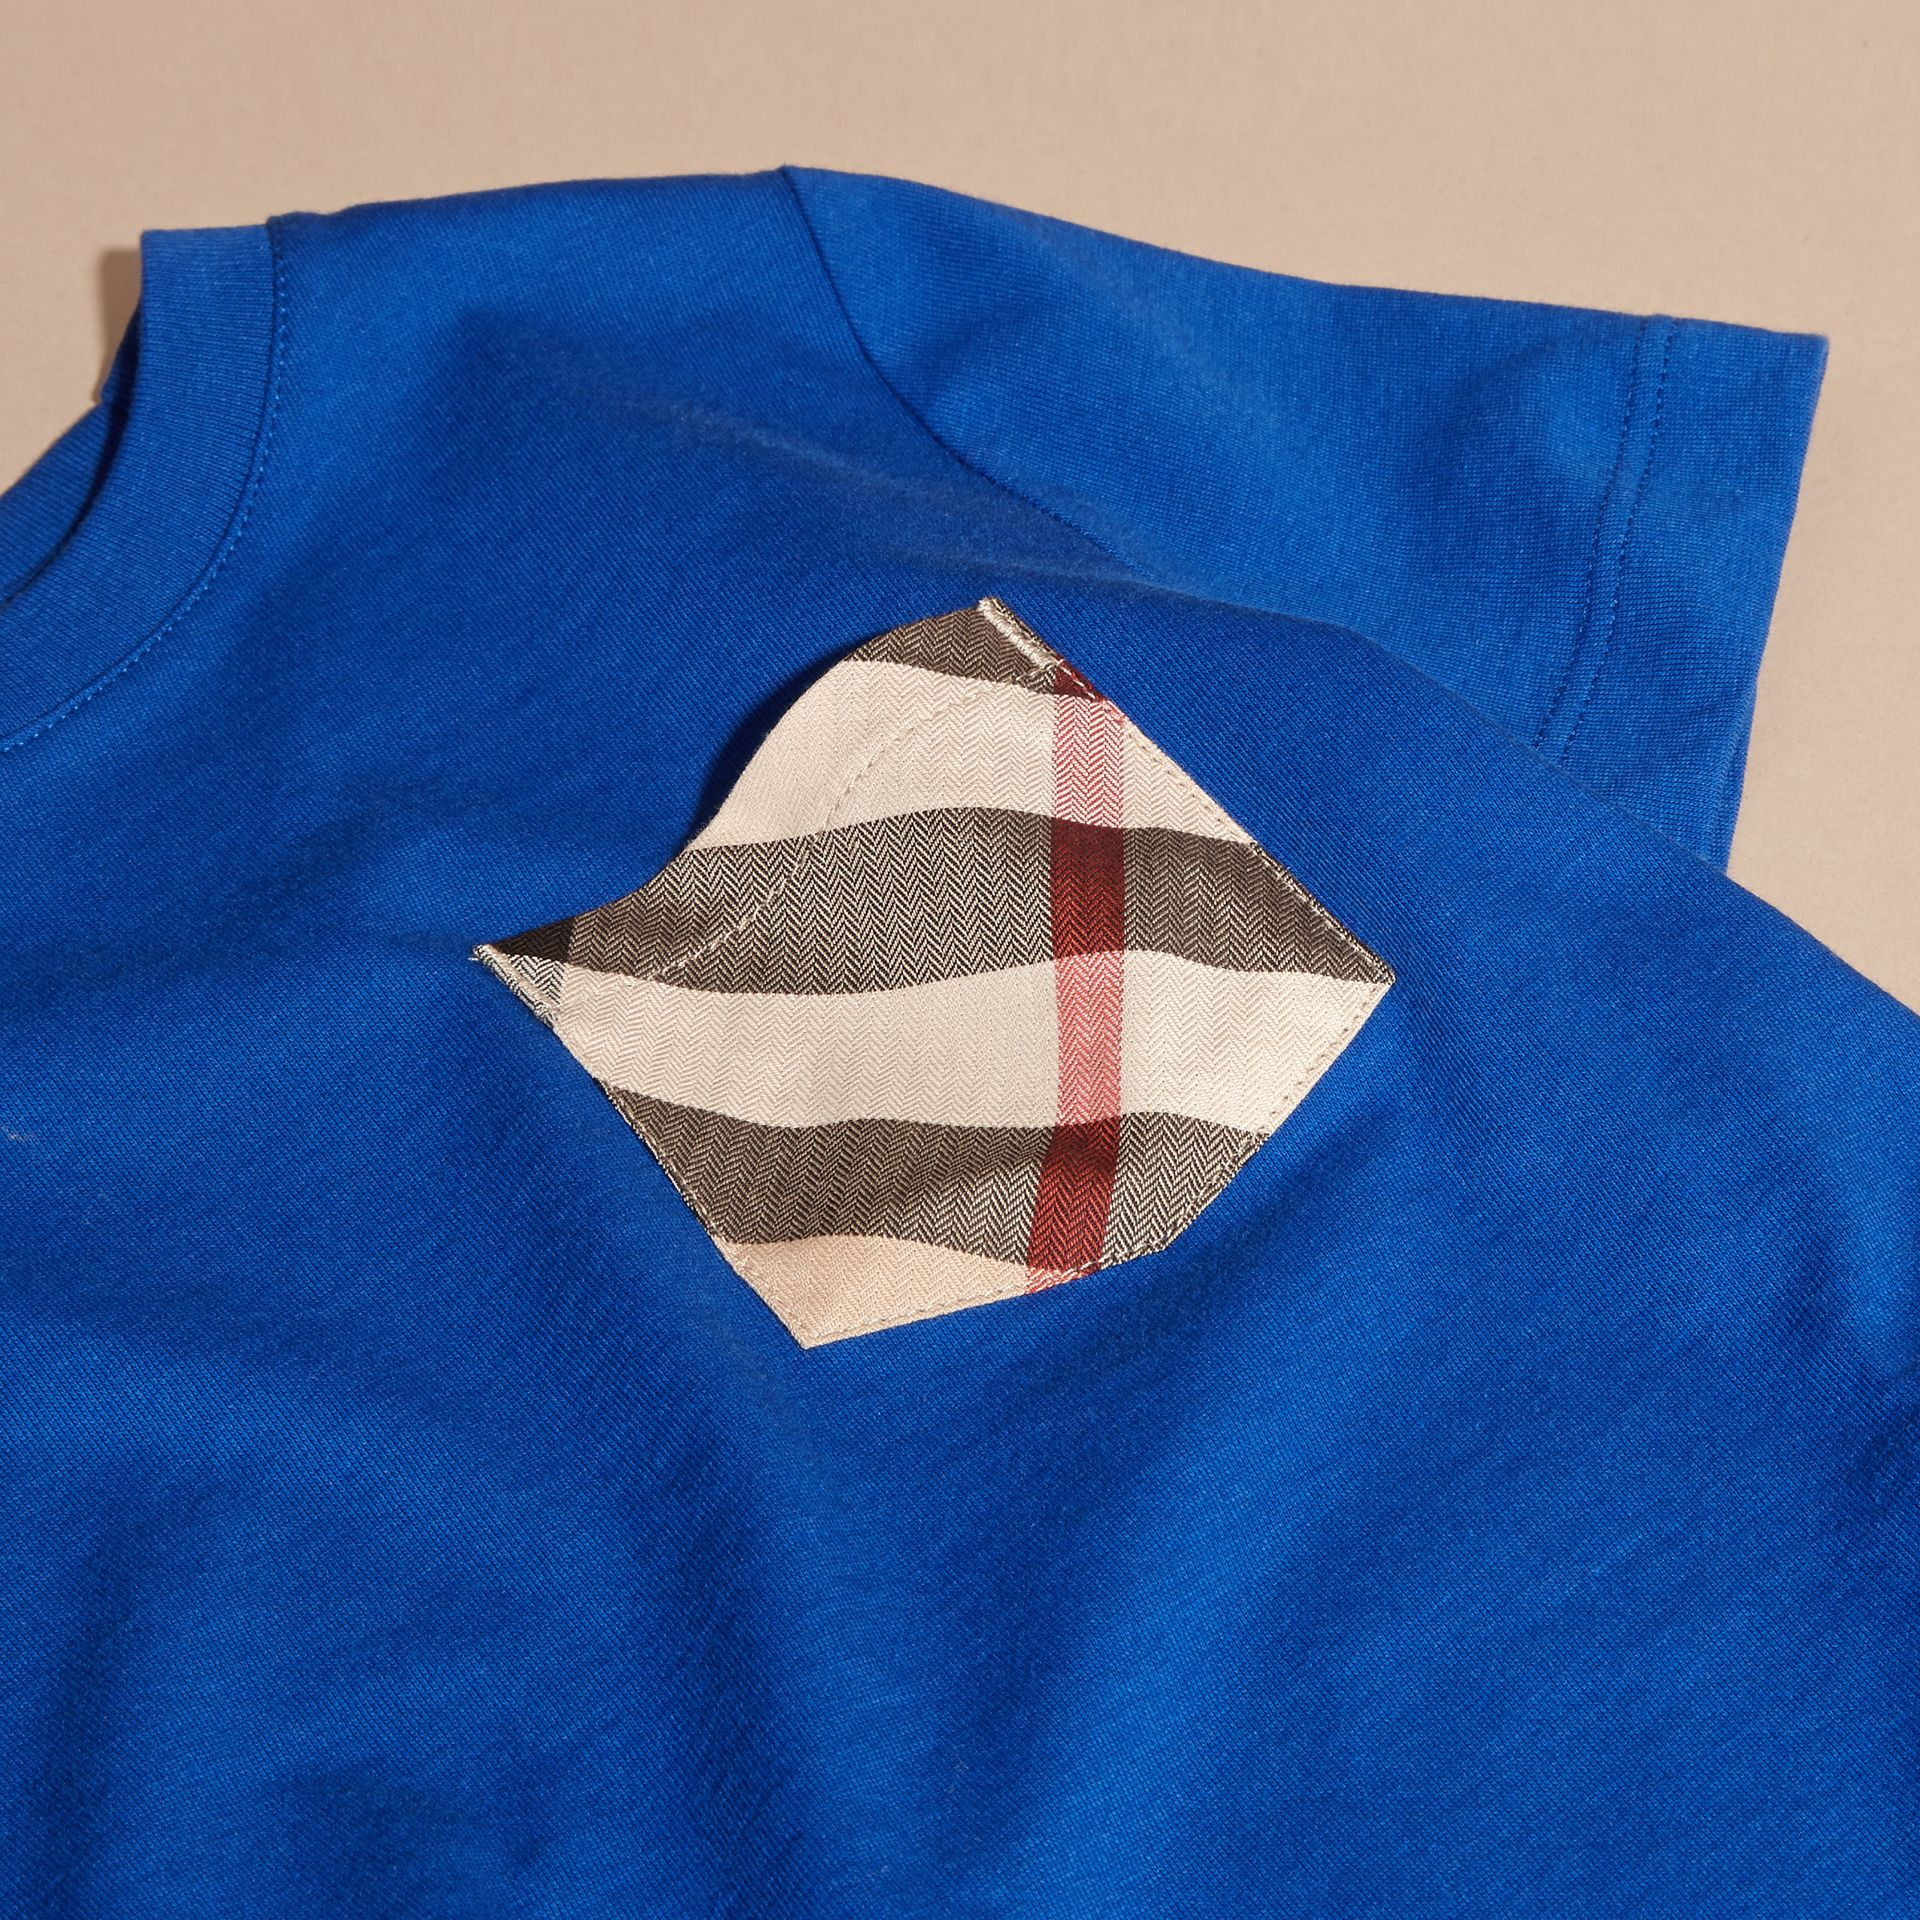 Brilliant blue Check Pocket T-Shirt Brilliant Blue - gallery image 2